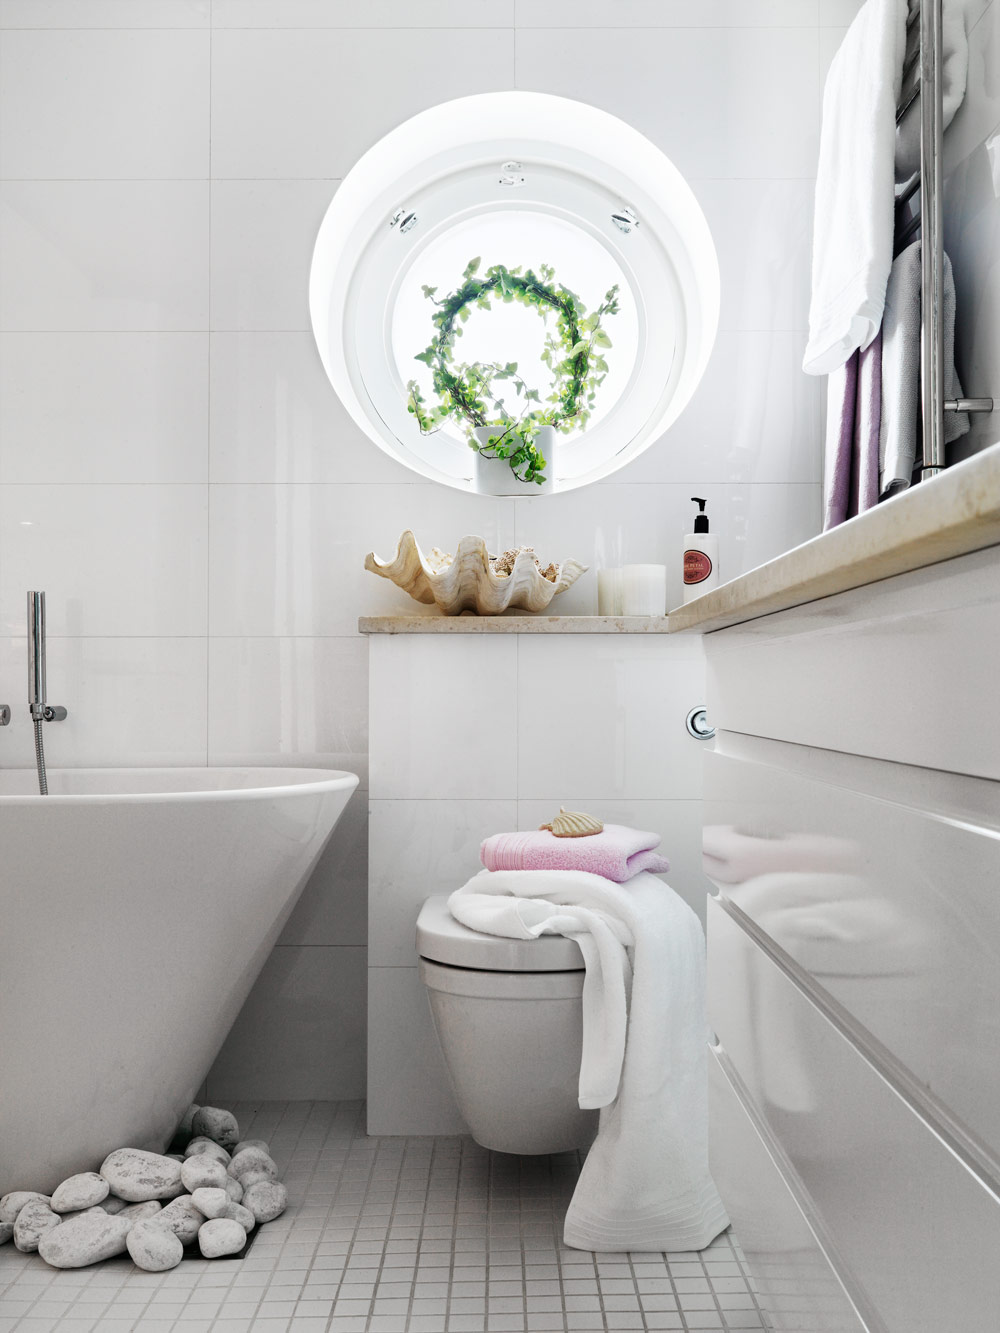 Stylish small bathroom with an unusual decor digsdigs Small bathroom designs